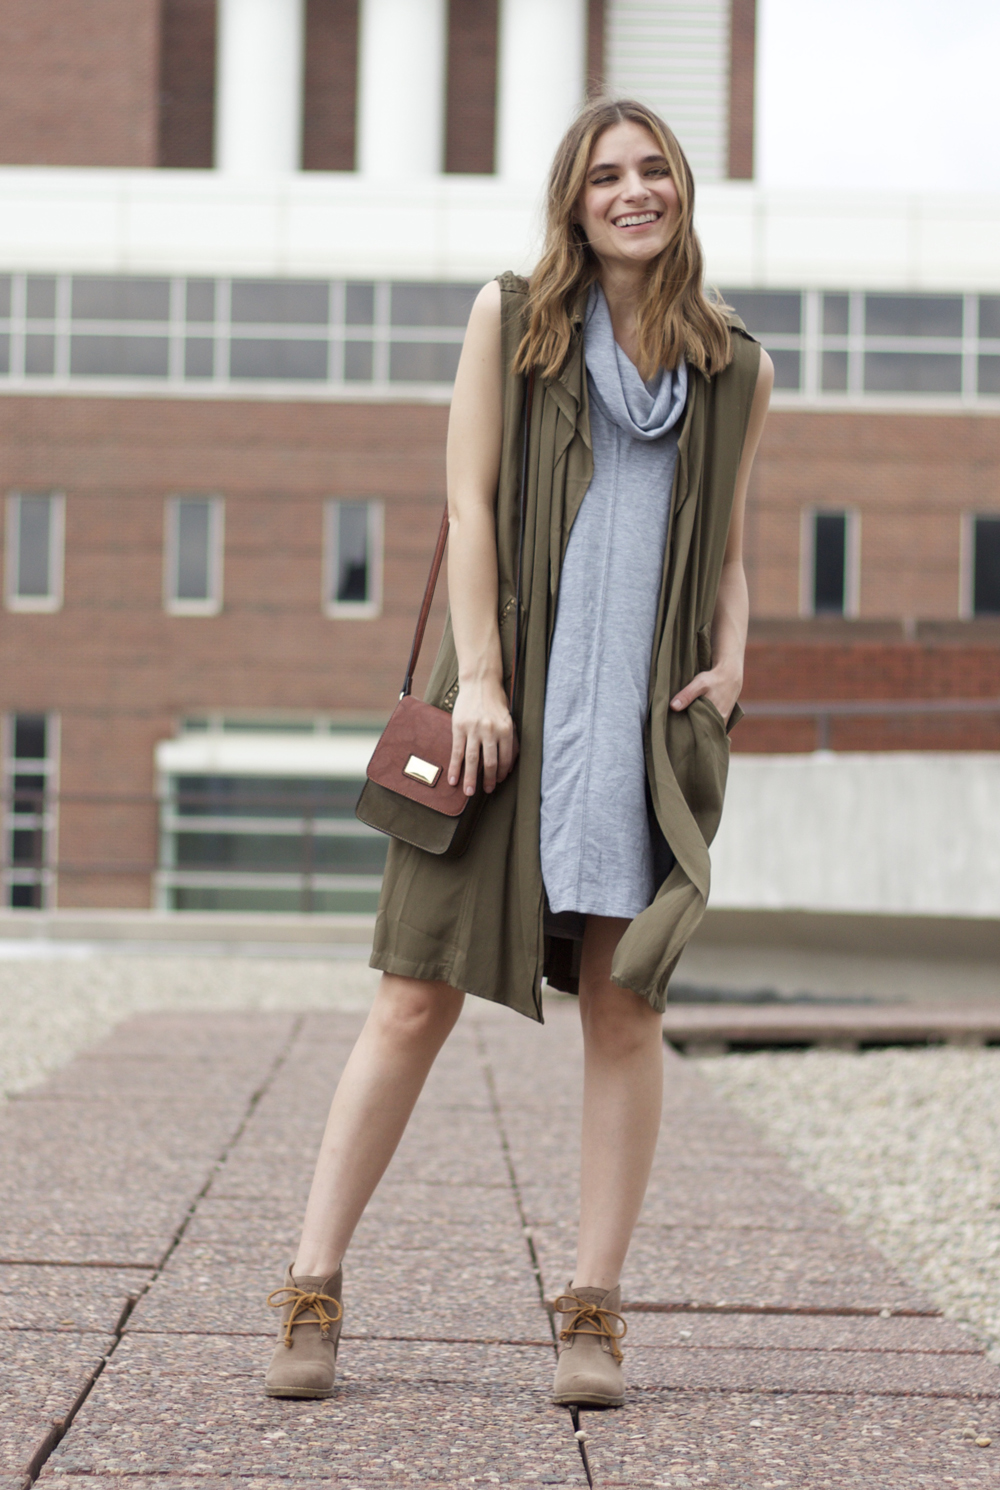 Prairie Gardens  Boutique – Champaign IL – Selection May Vary - Styled by  The Dark Plum